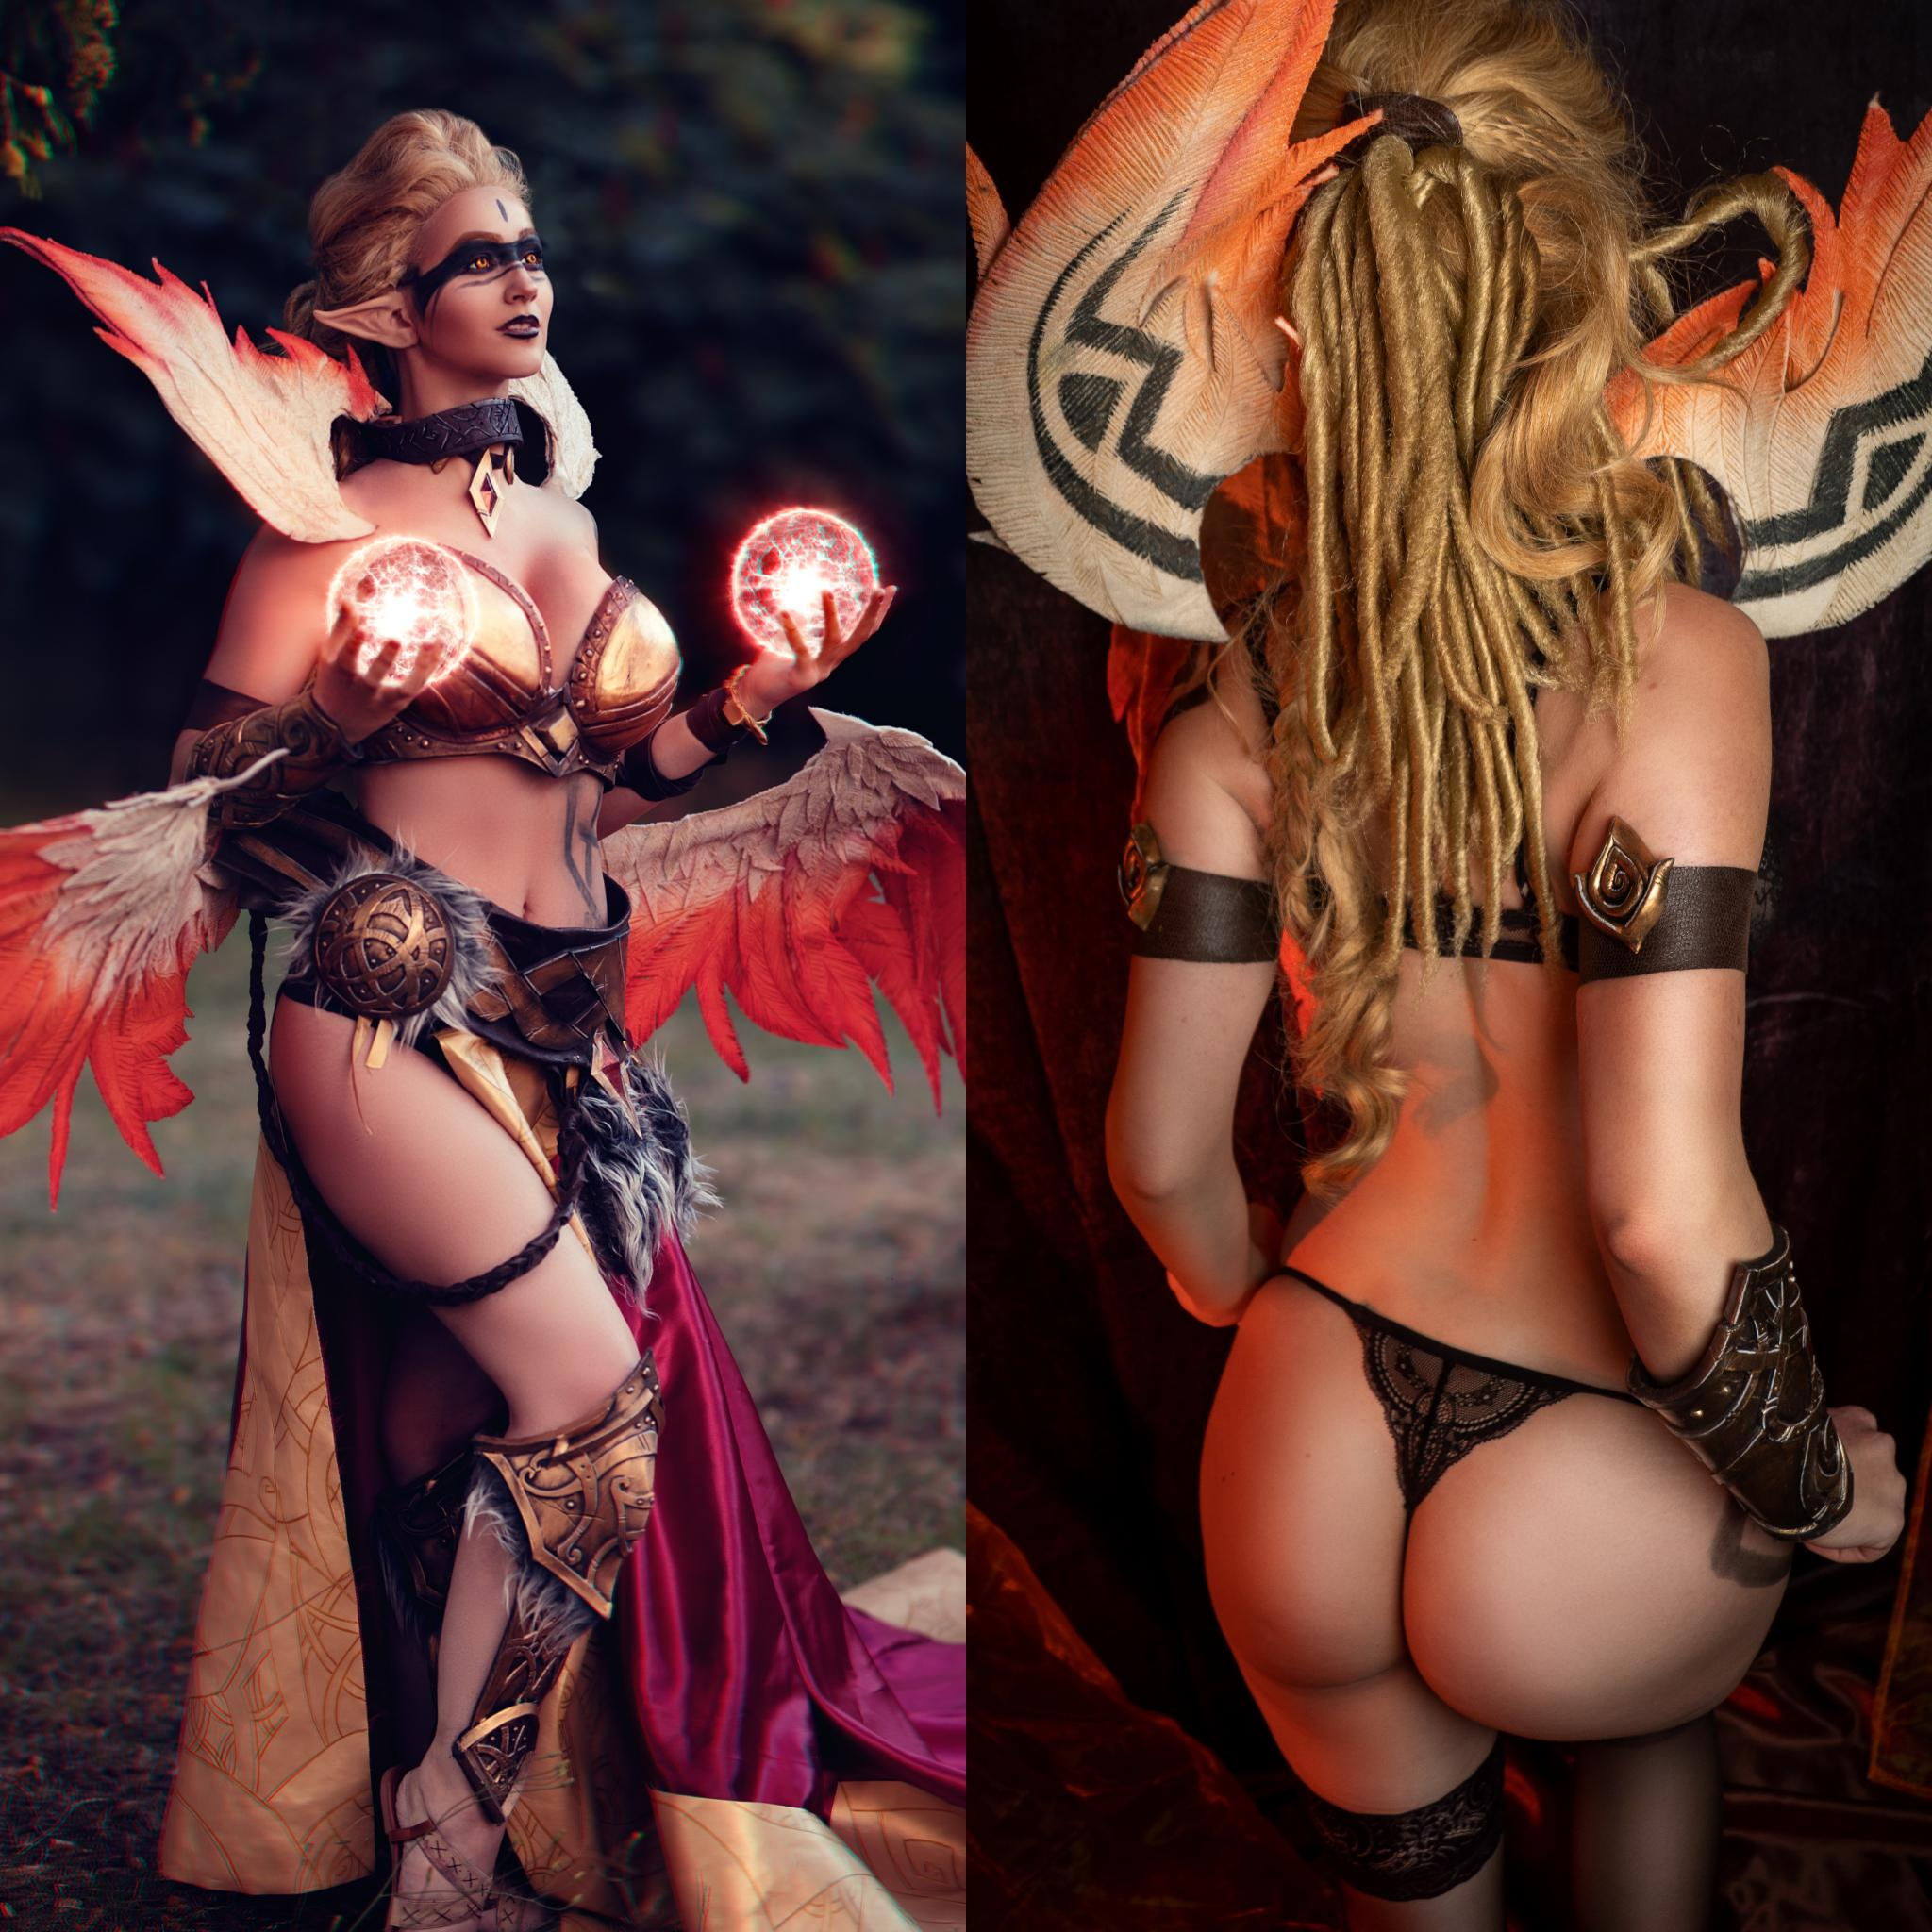 ON Or OFF? *LienSue* As Exiled Morgana From League Of Legends / Left Photo Made By Bcwphoto